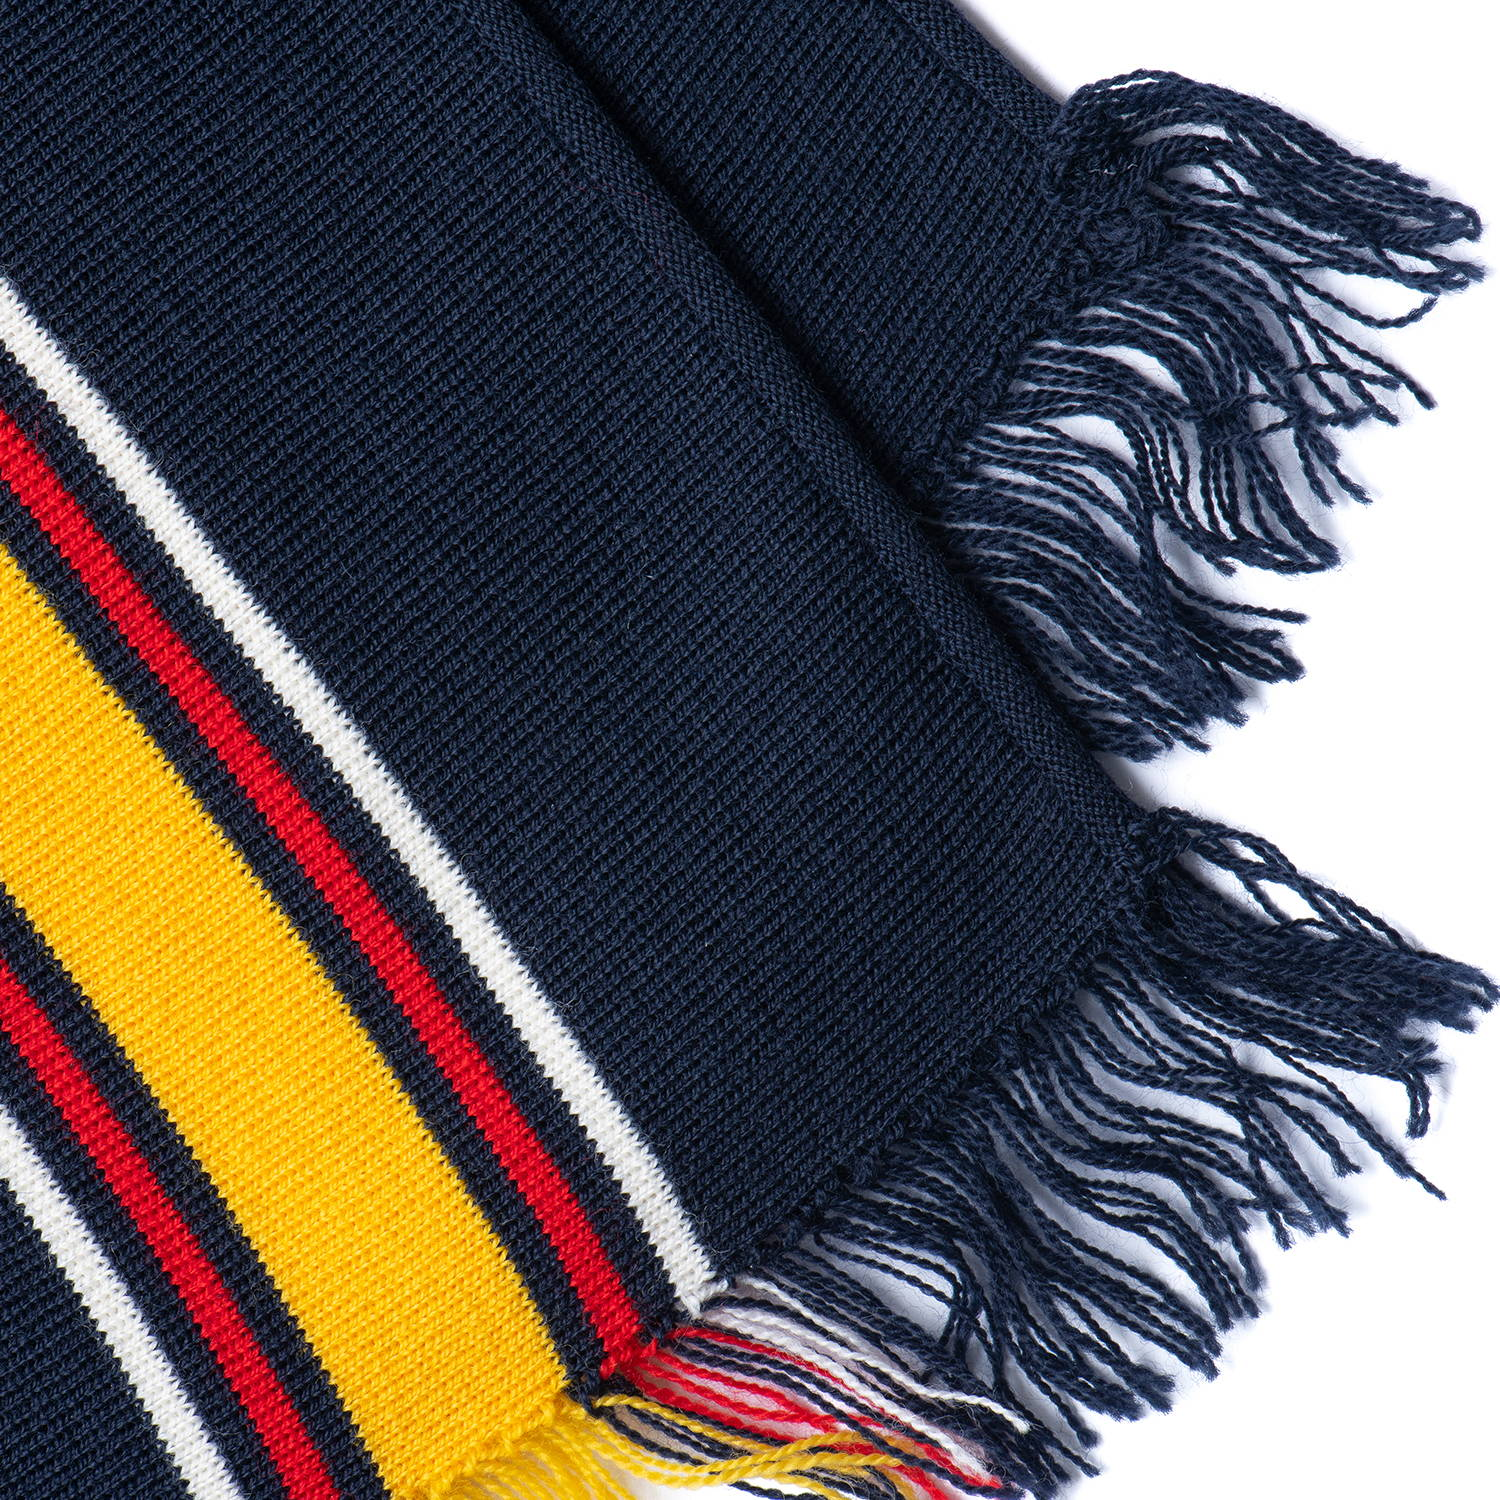 Custom knitted scarf by Valour Sport